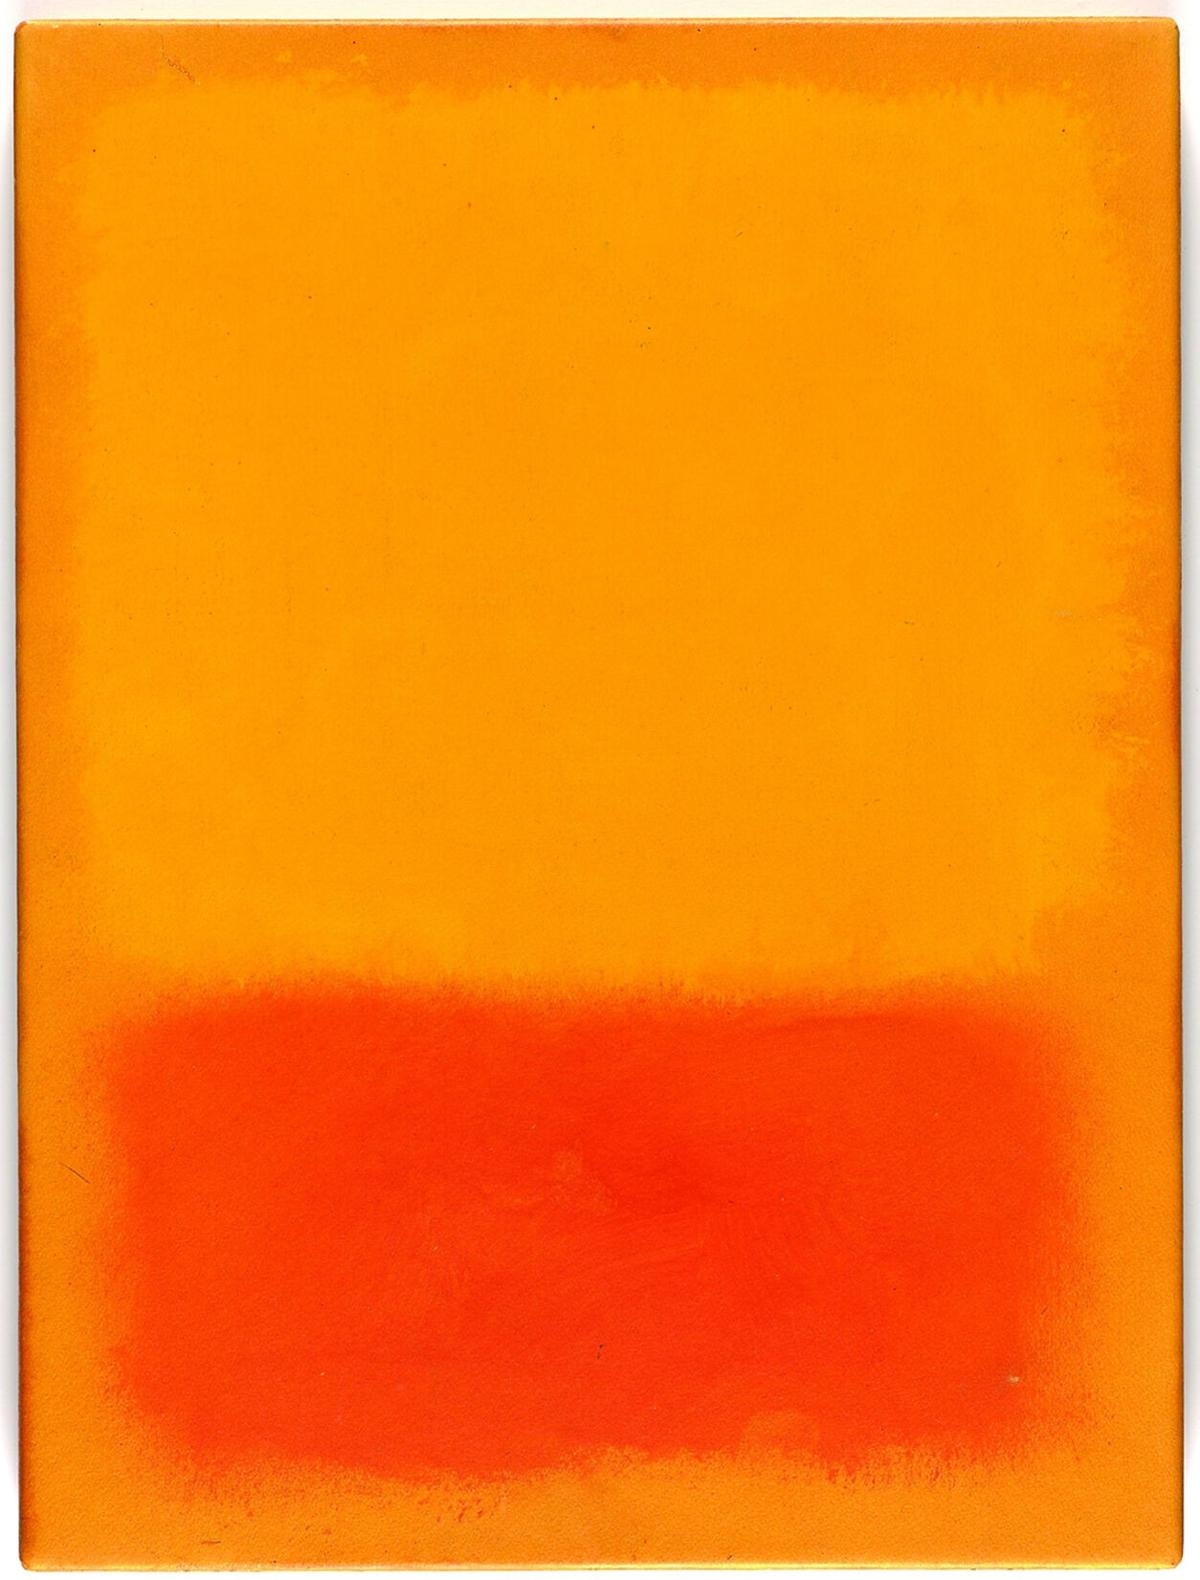 Mark Rothko and the Color of Emotion. Thursday, February 18, 7 - 8:30 p.m.